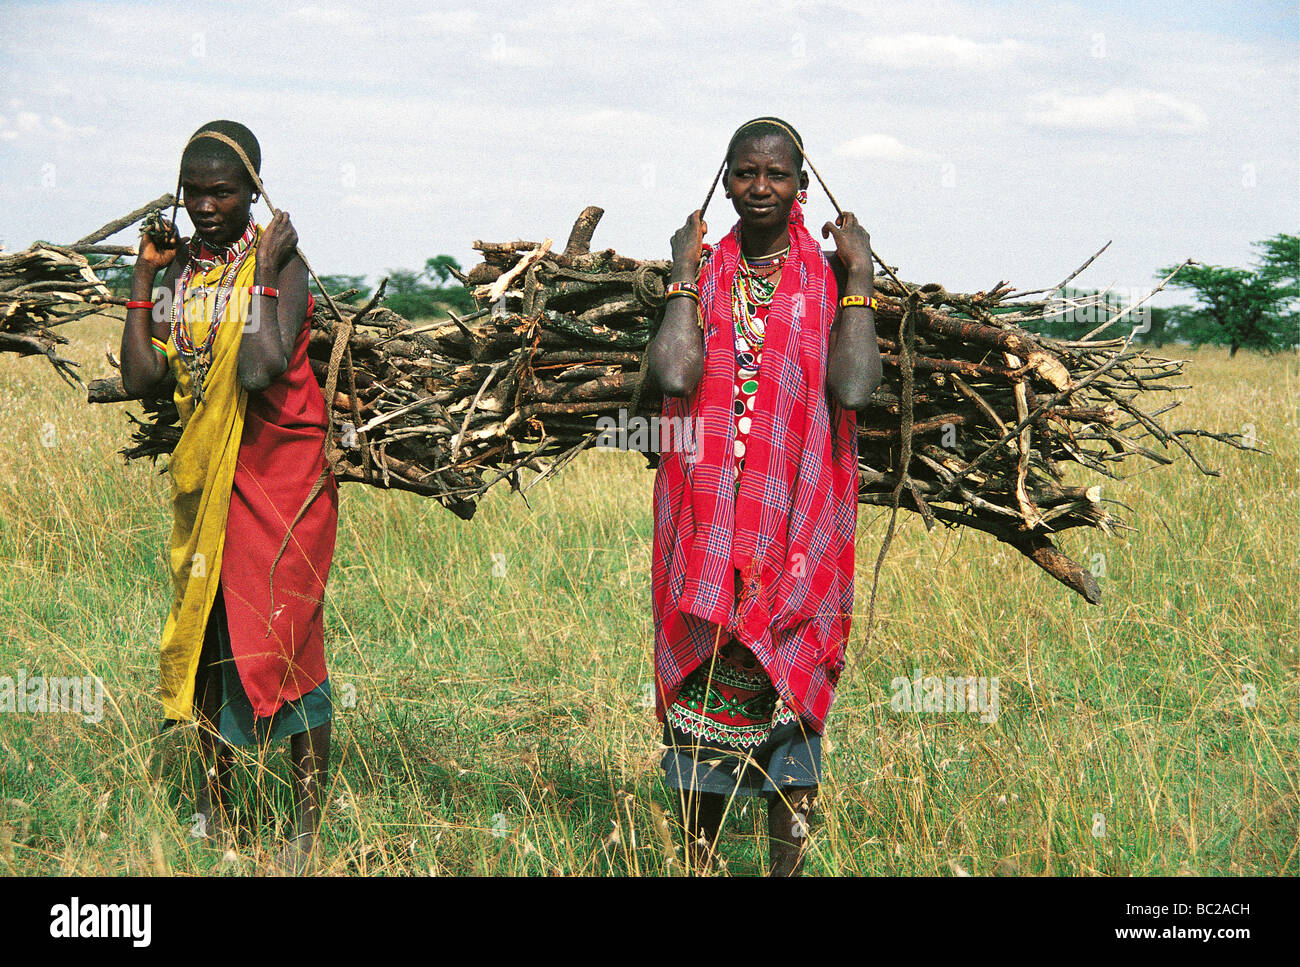 african woman carrying firewood stockfotos african woman carrying firewood bilder alamy. Black Bedroom Furniture Sets. Home Design Ideas